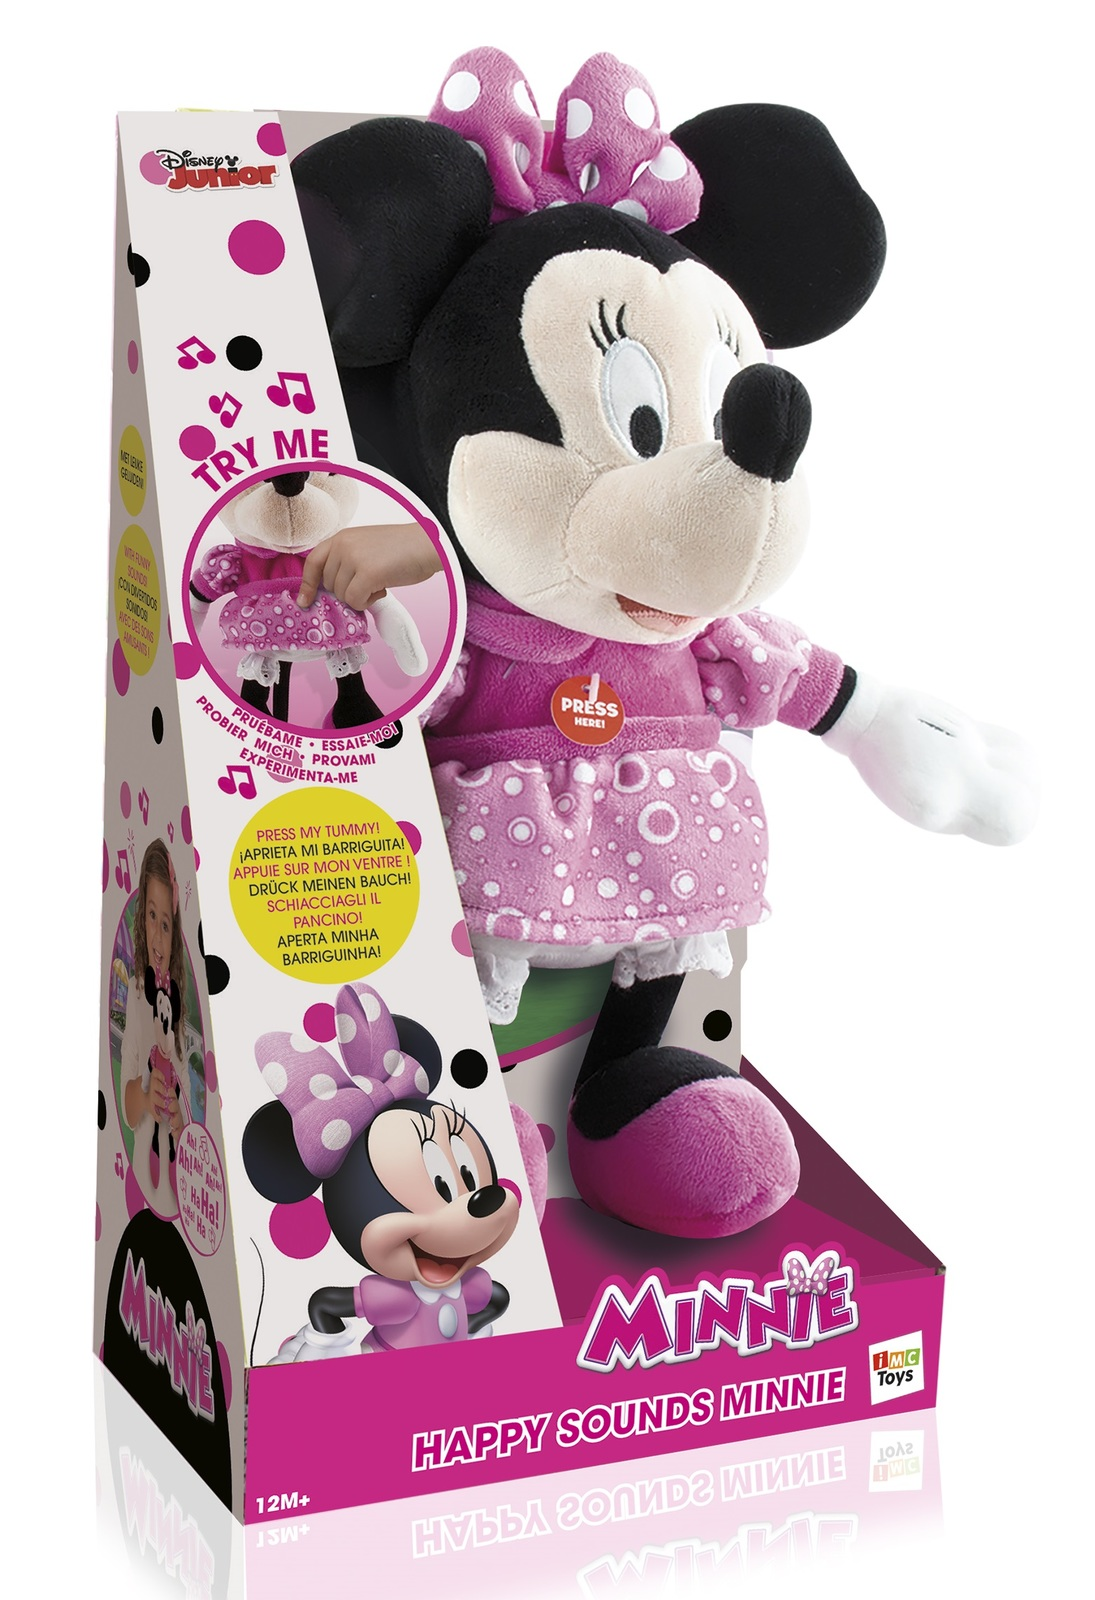 Disney: Happy Sounds Minnie - Soft Toy image